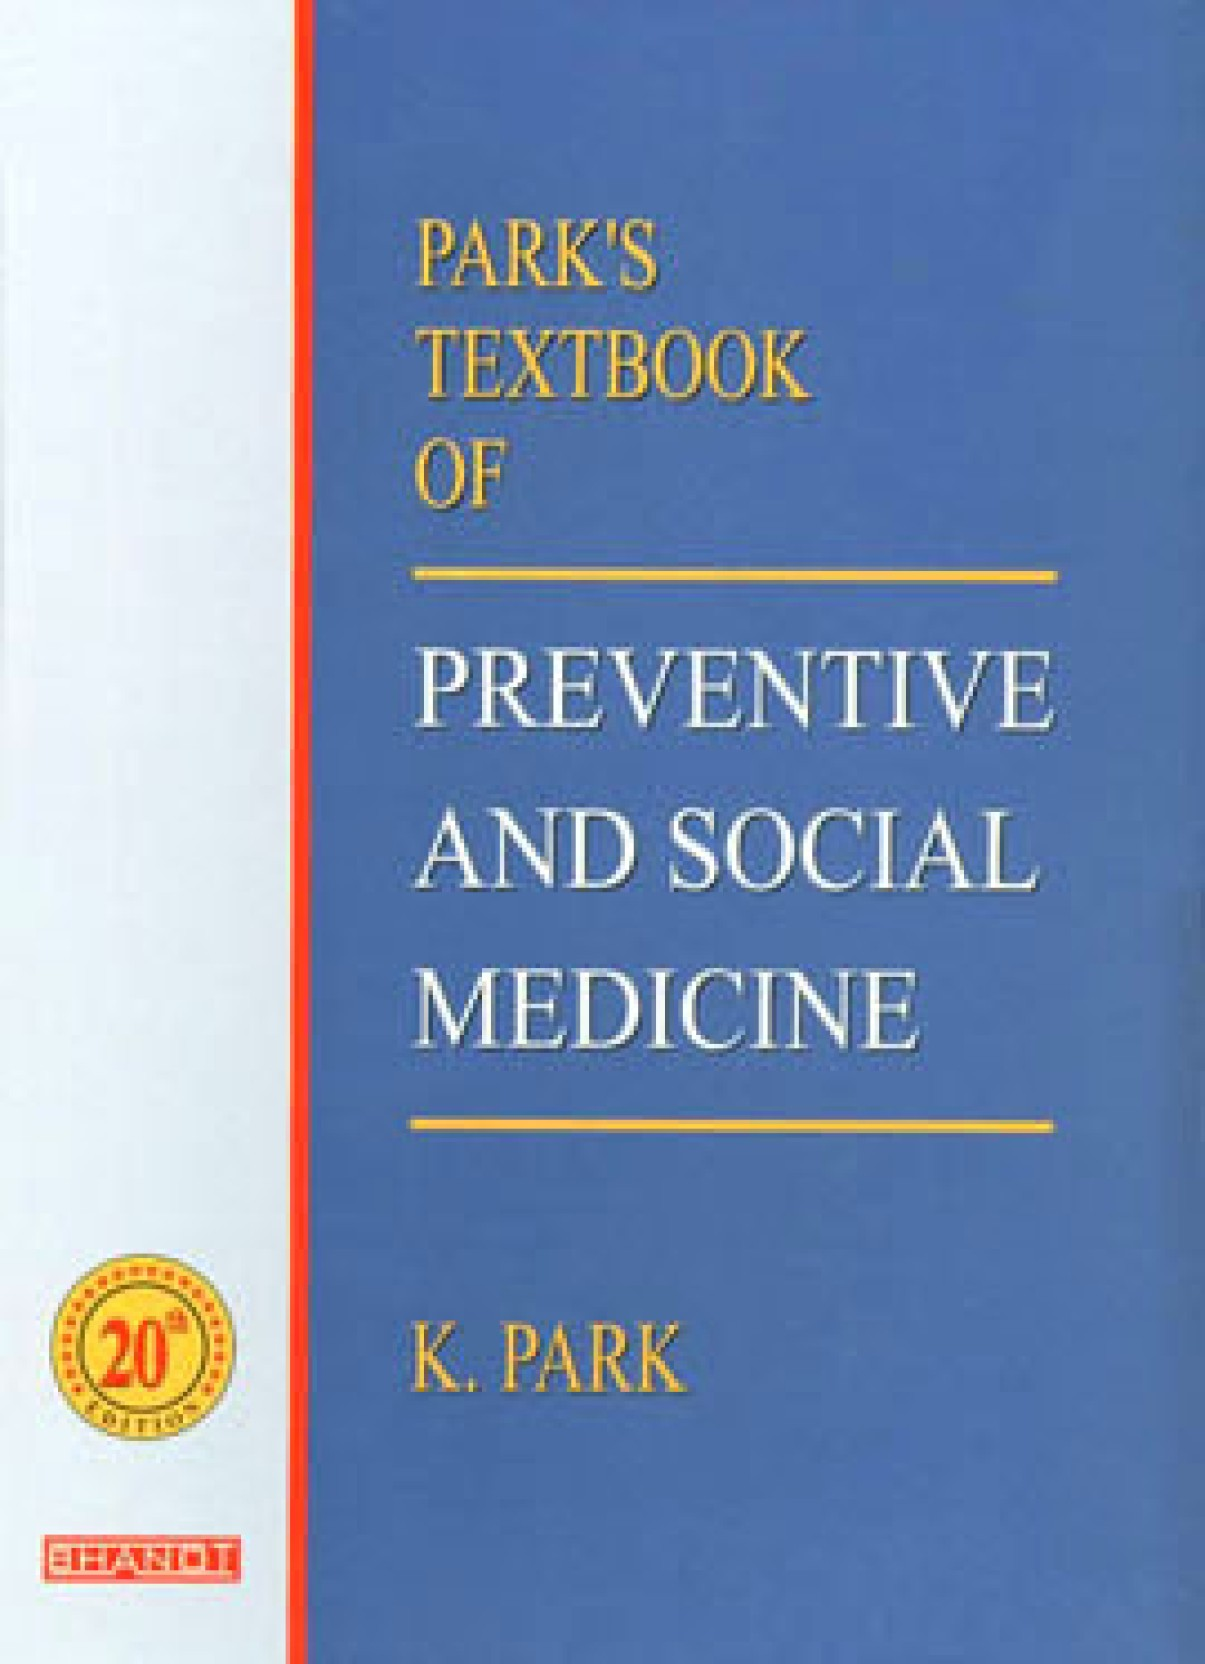 Park's Textbook of Preventive and Social Medicine 20th Edition - Buy Park's Textbook of ...